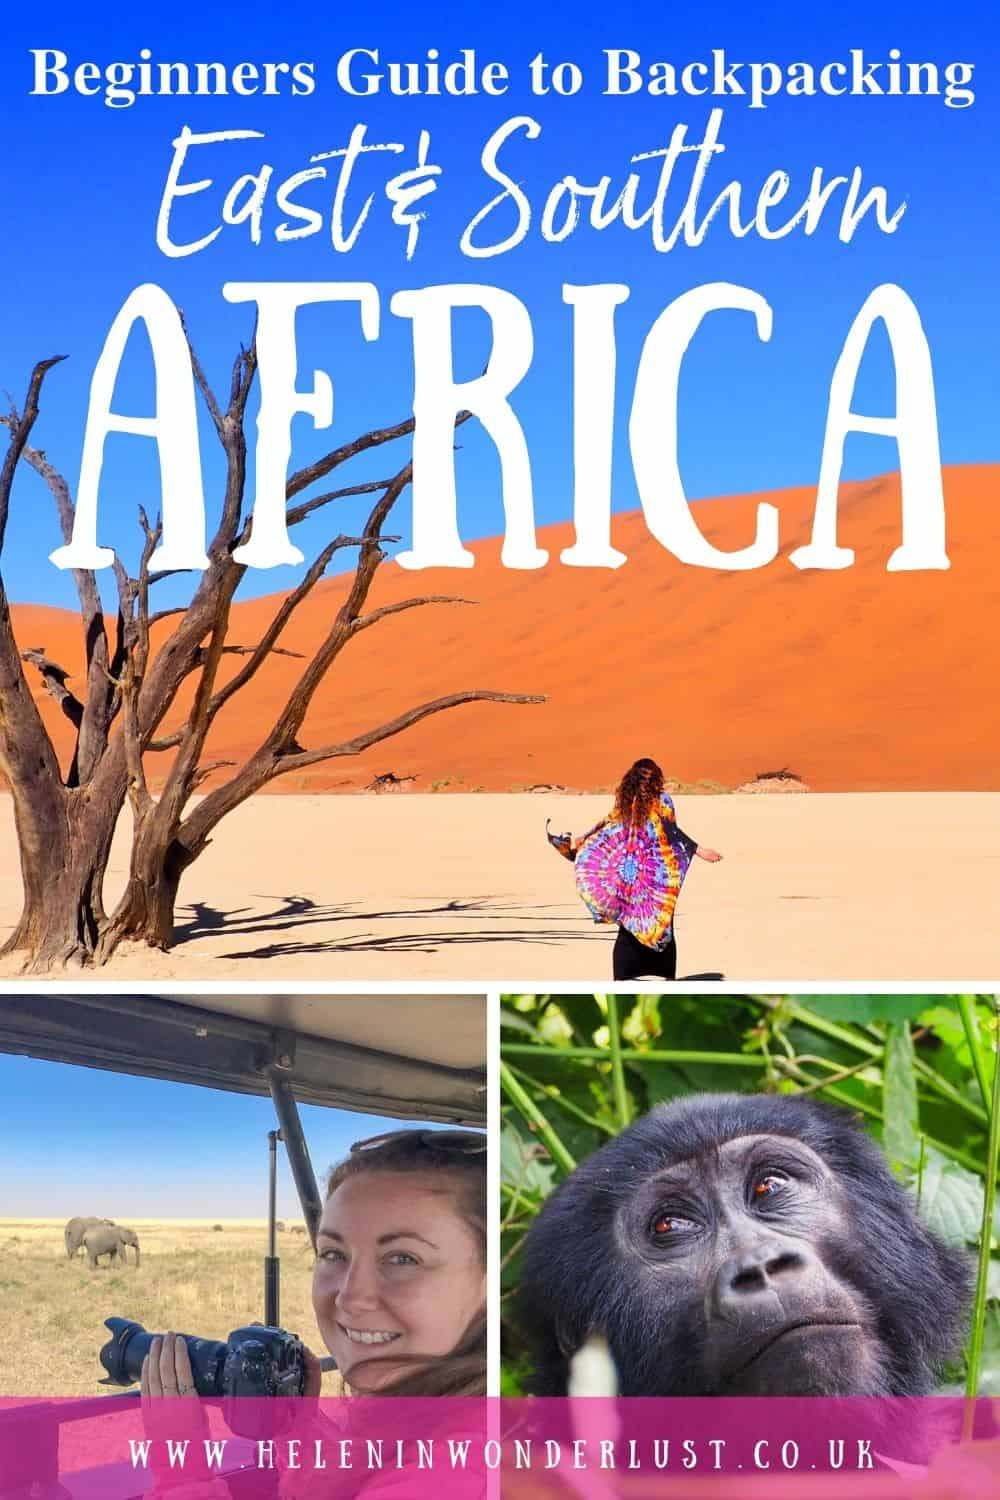 The Beginners Guide to Backpacking East & Southern Africa